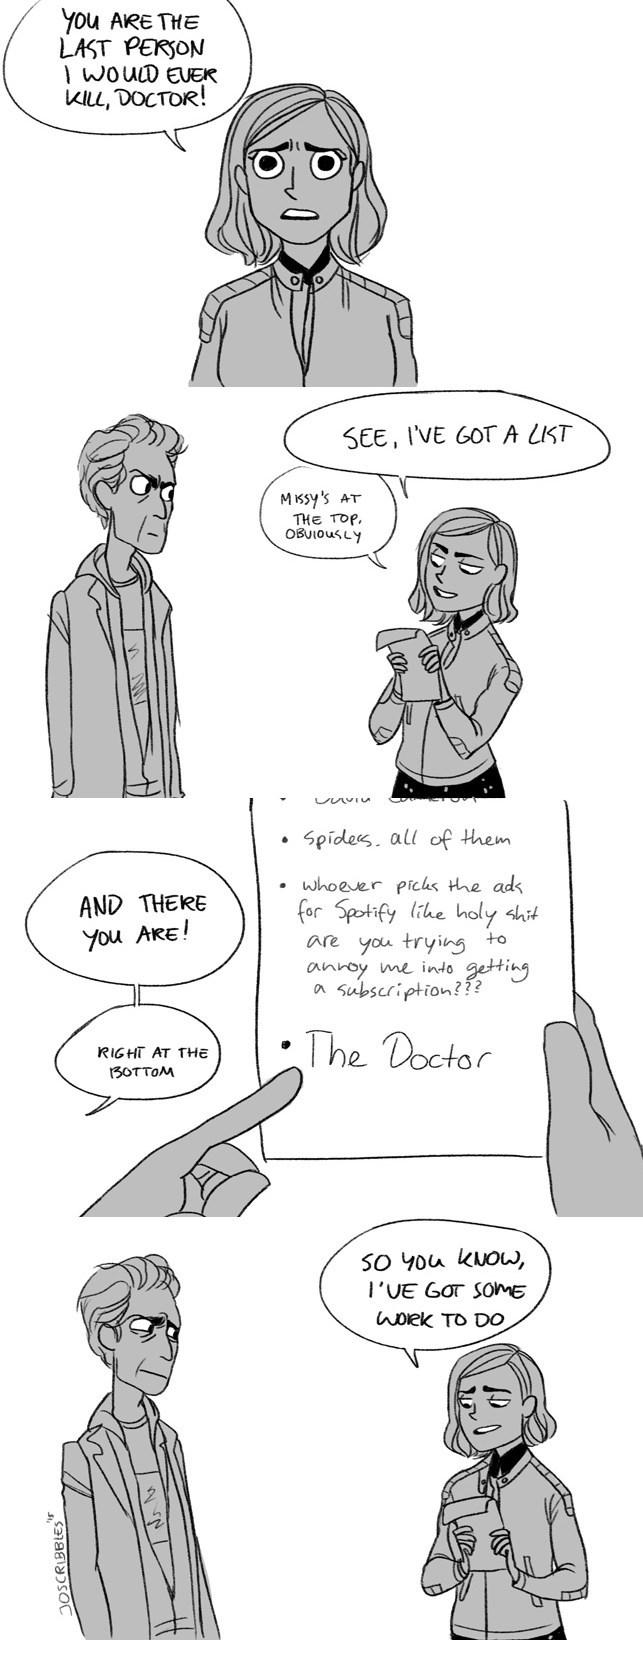 funny-doctor-who-clara-oswald-kill-list-web-comic